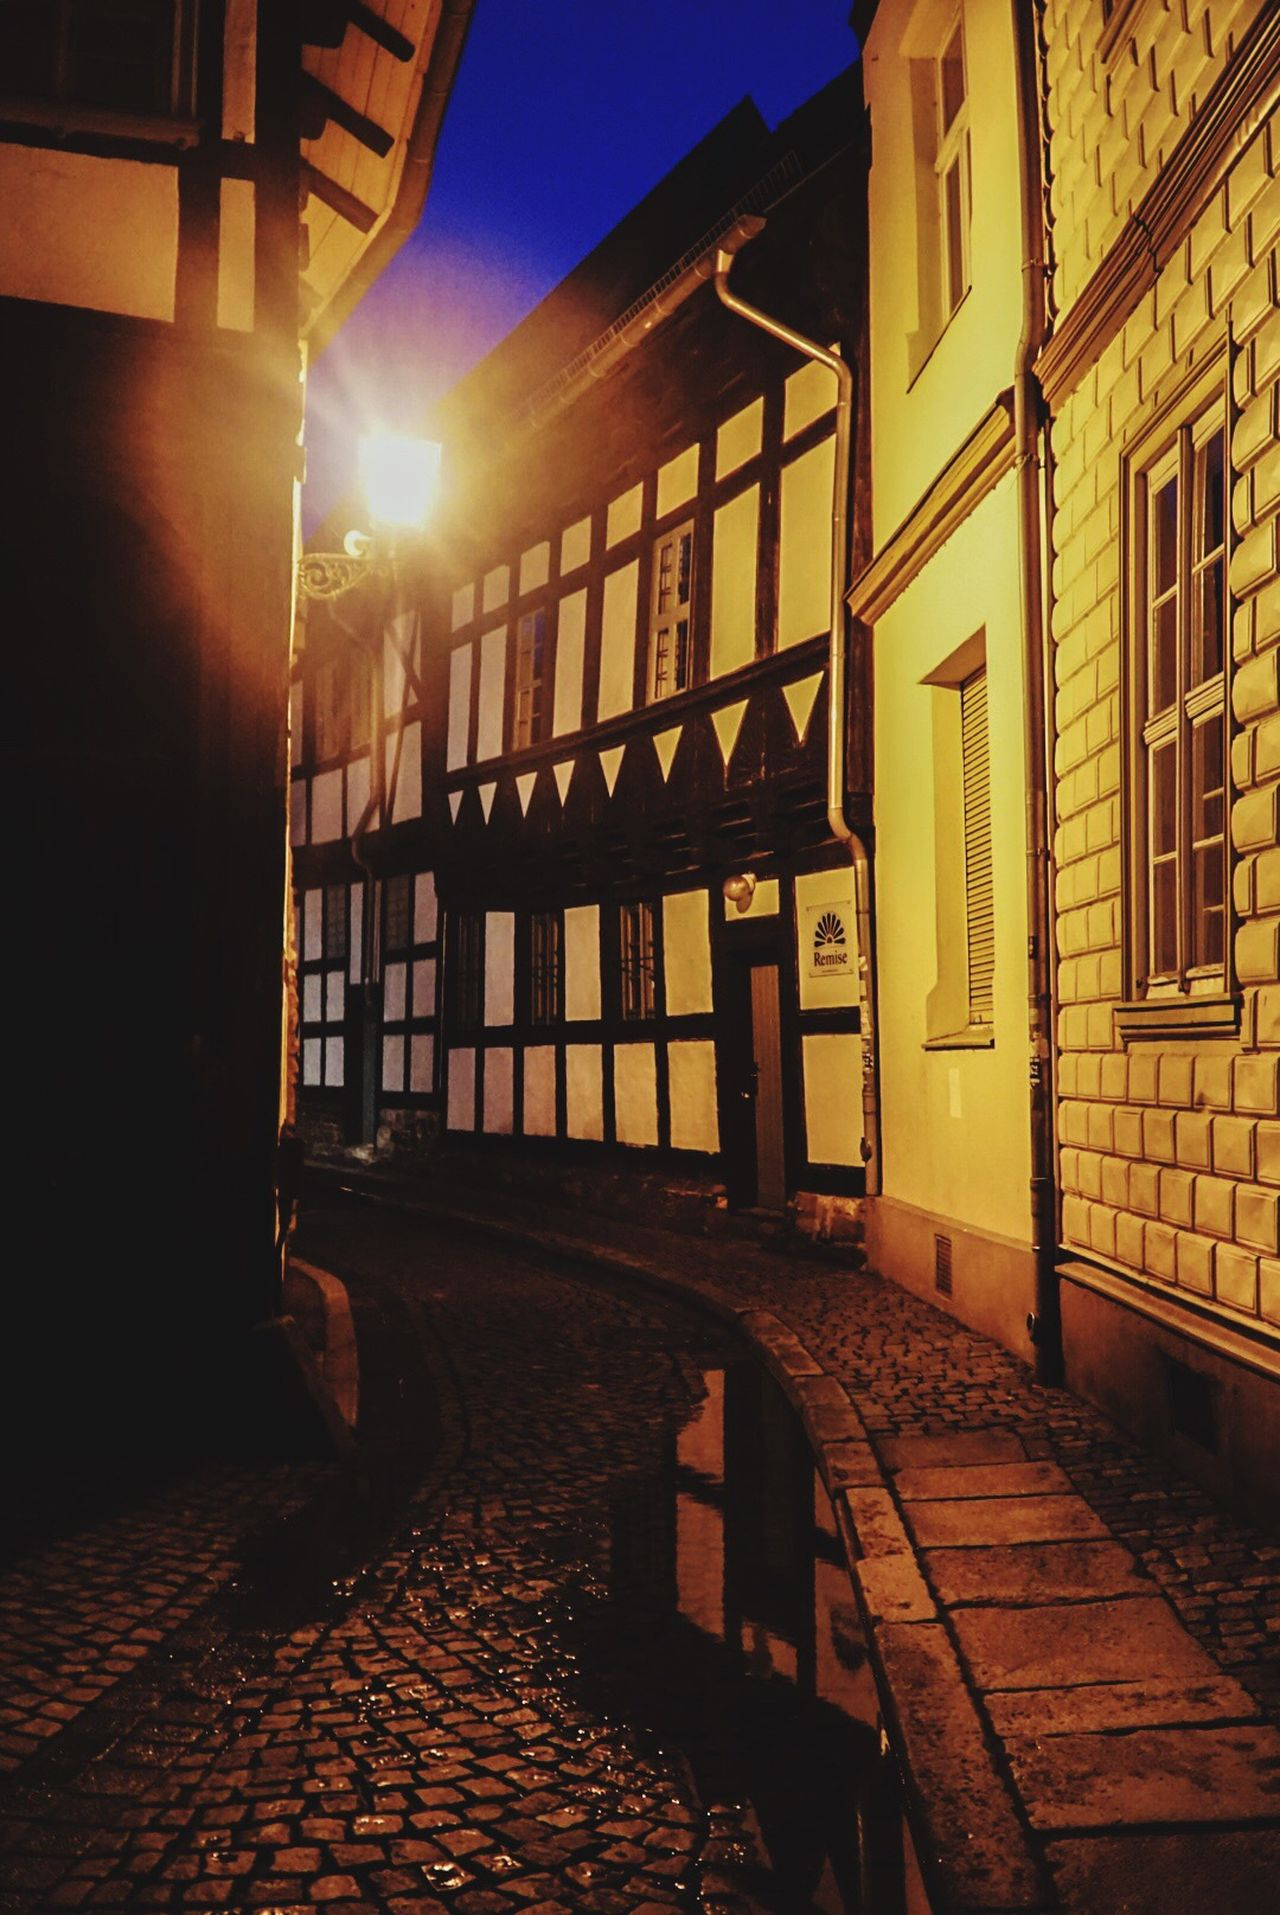 Built Structure Architecture Building Exterior Window House Illuminated No People Outdoors Sky Day Nightphotography Night Night Photography Night Lights Saxonyanhalt Wernigerode